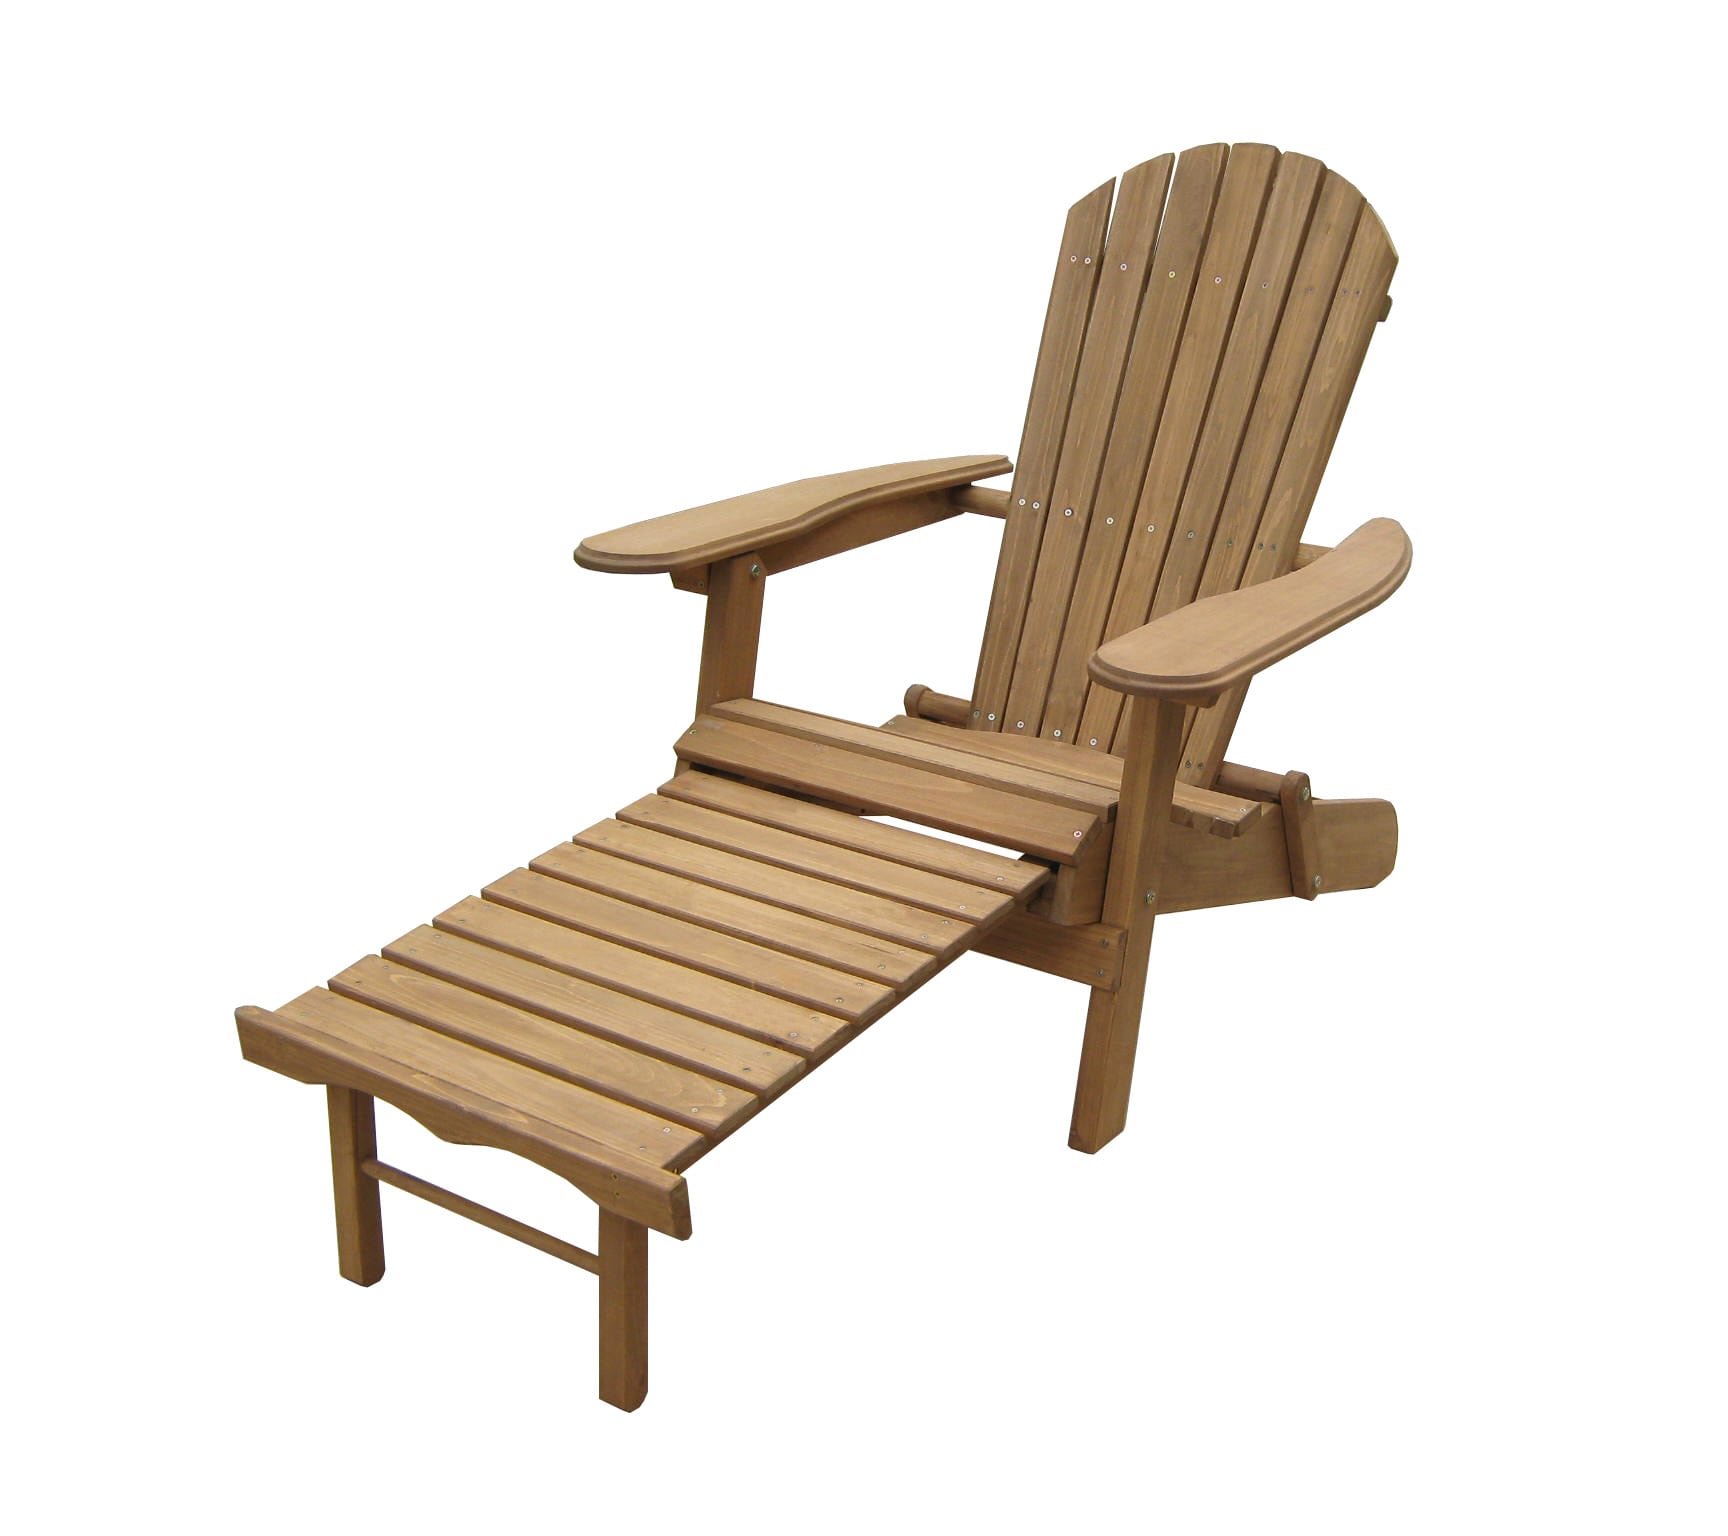 Merry Products Foldable Adirondack Chair with Pull Out Ottoman